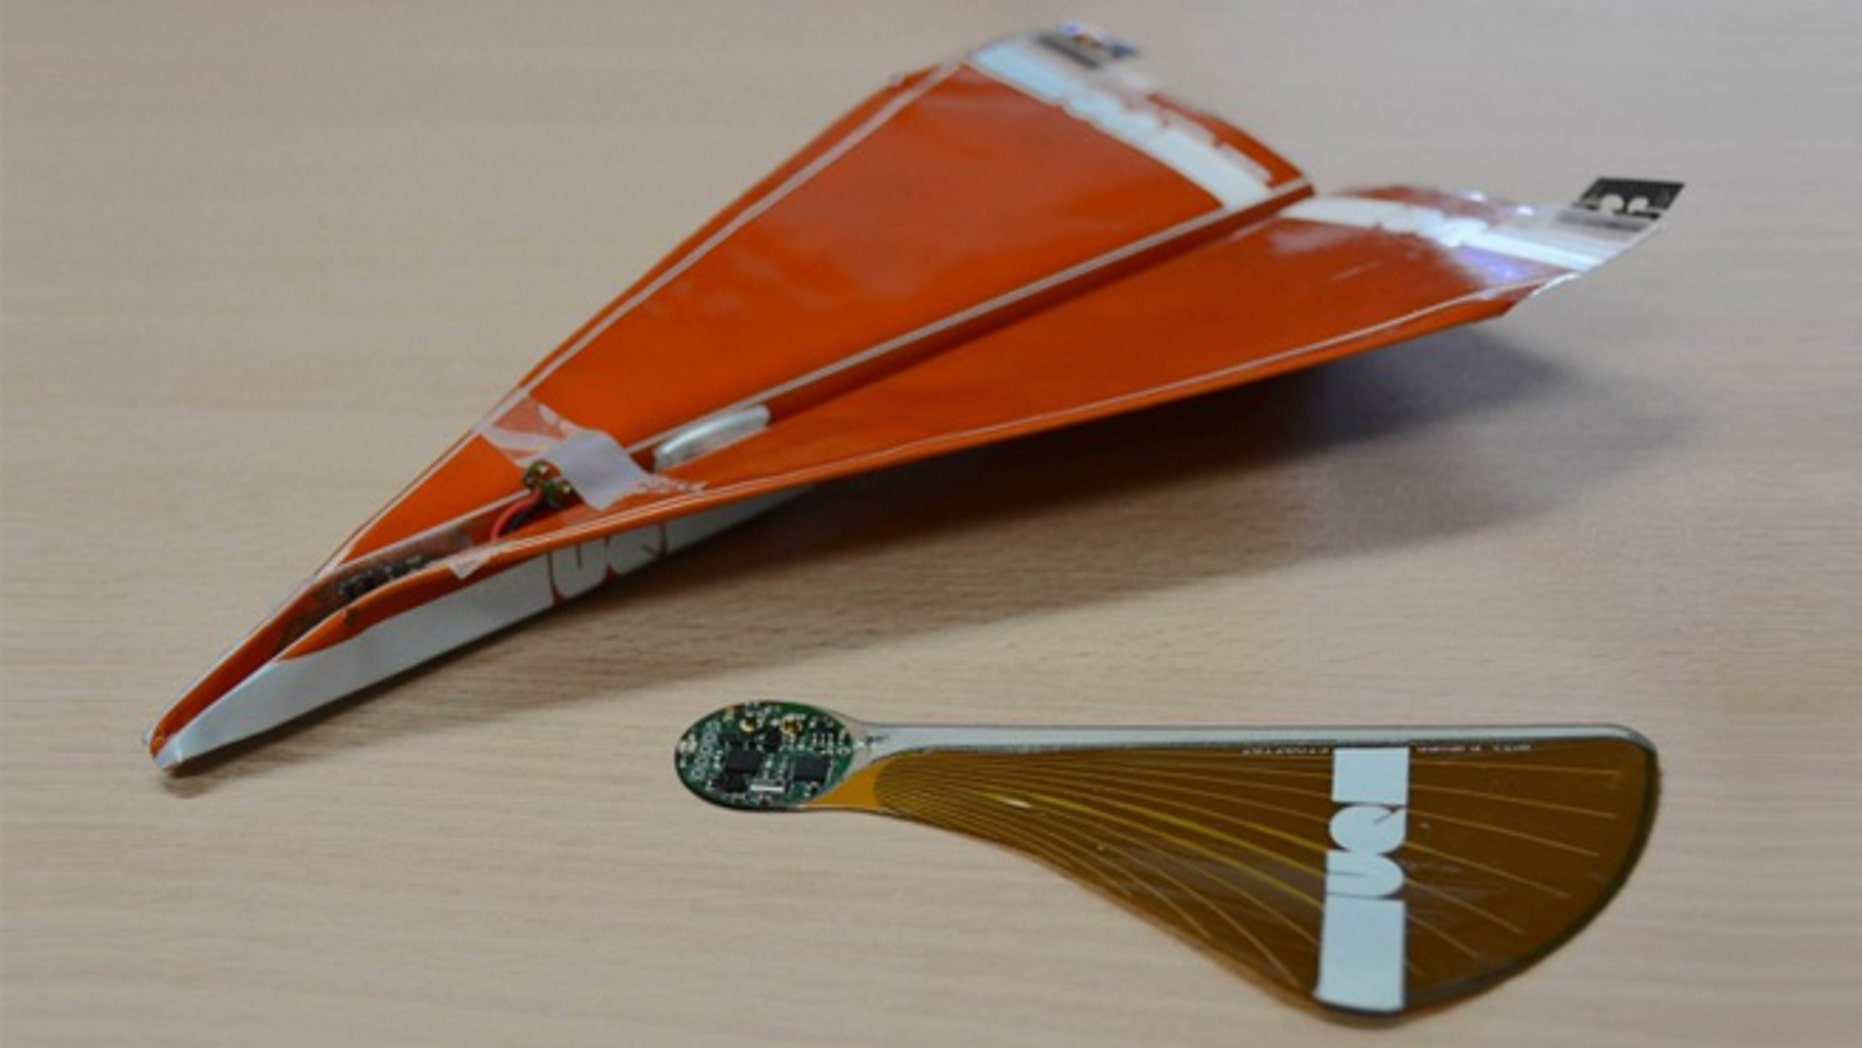 The prototype looks like a standard paper airplane, only this drone is made of biodegradable cellulose material.